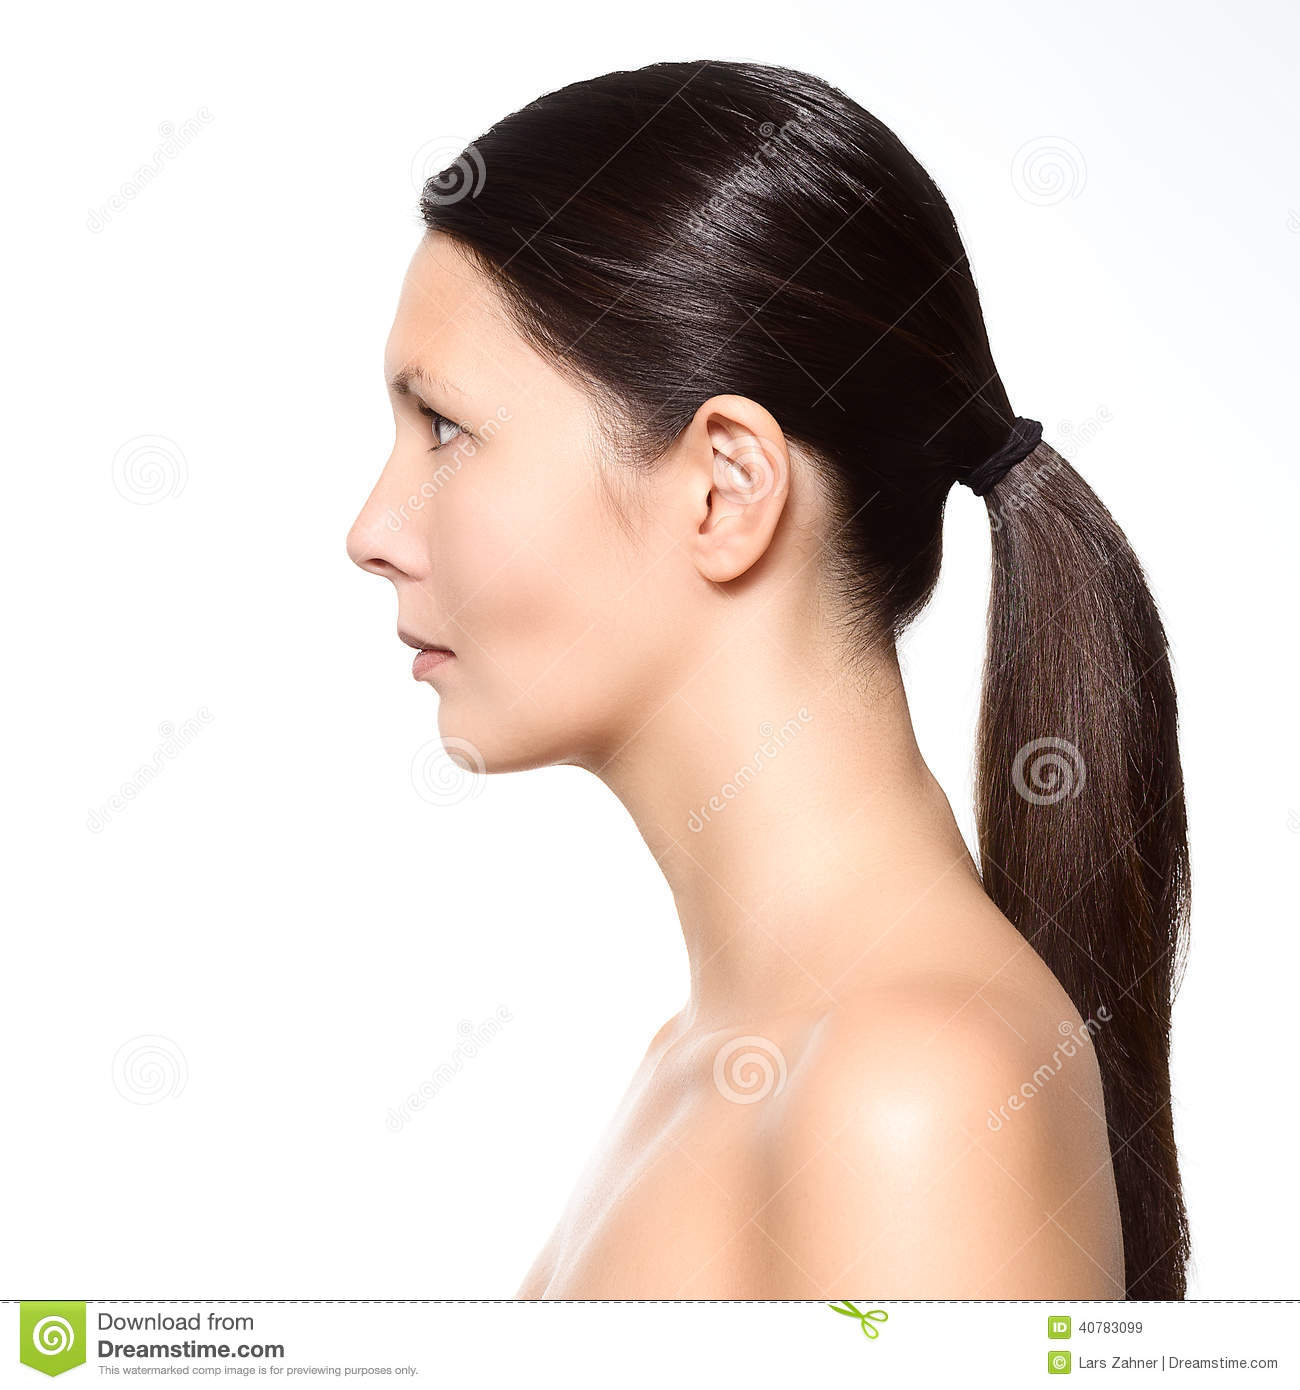 Naked Young Woman Standing In Profile Stock Image - Image